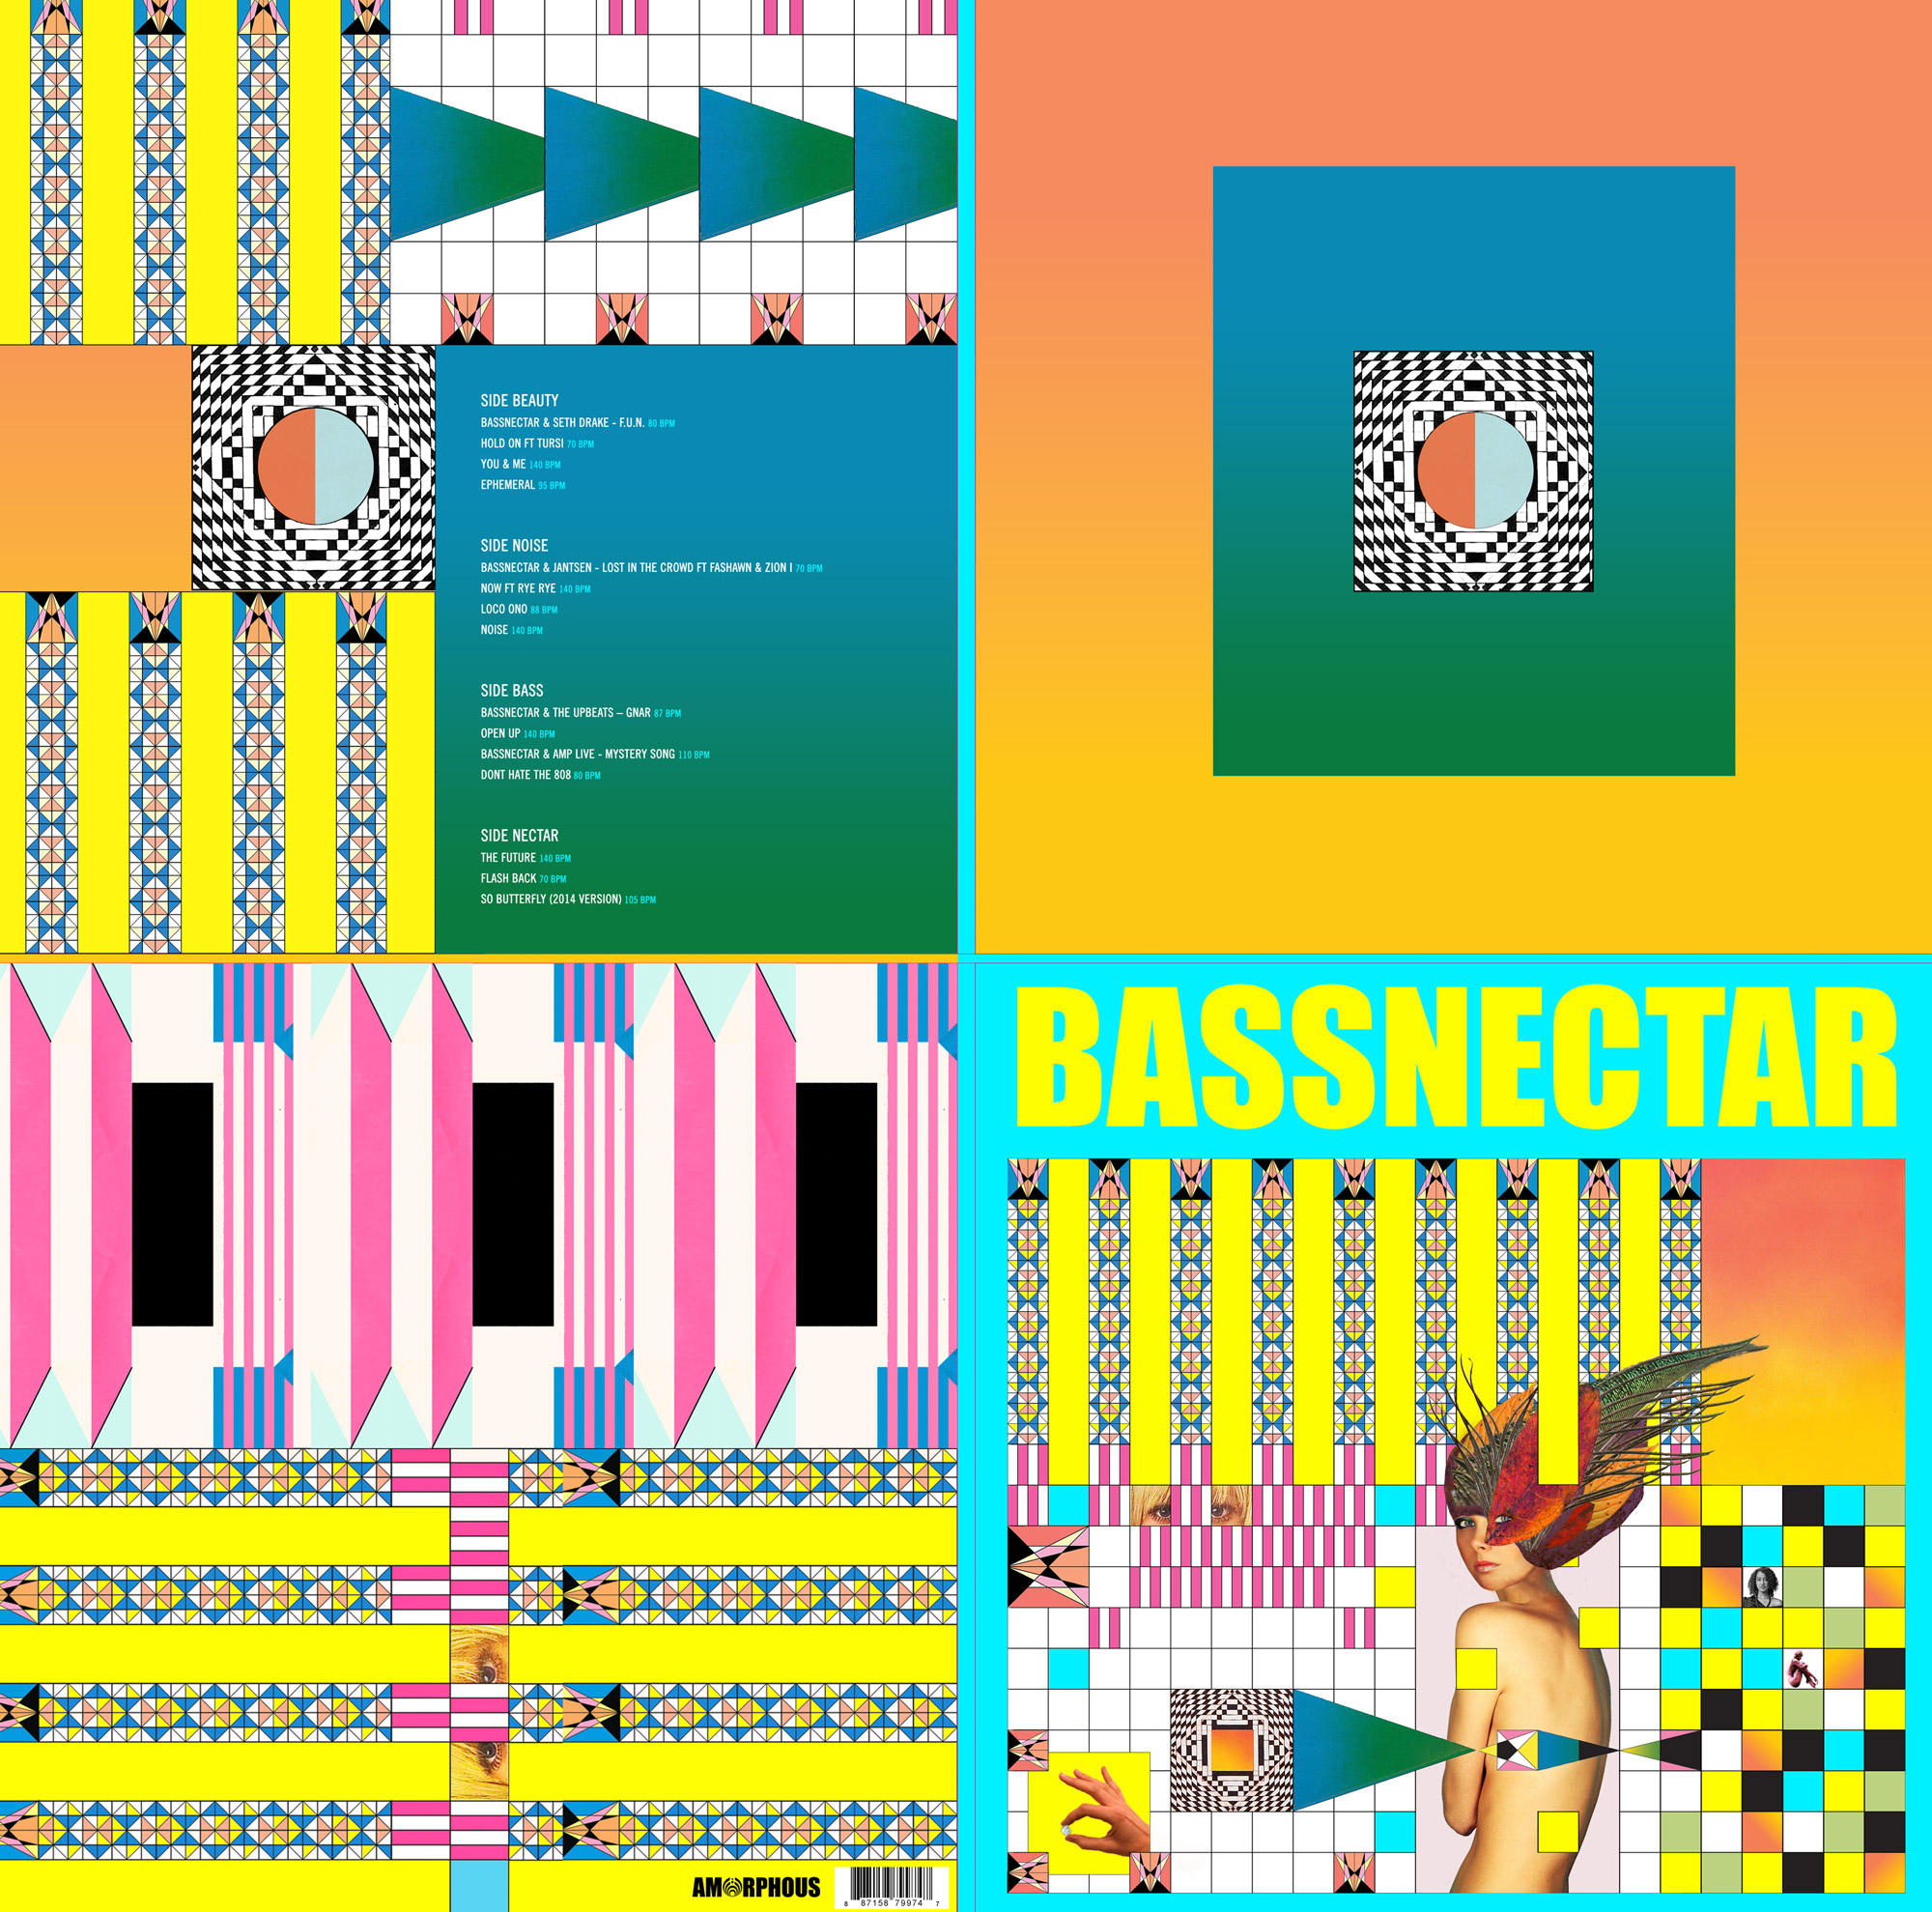 Bassnectar - Noise vs Beauty Vinyl- In Stores Now